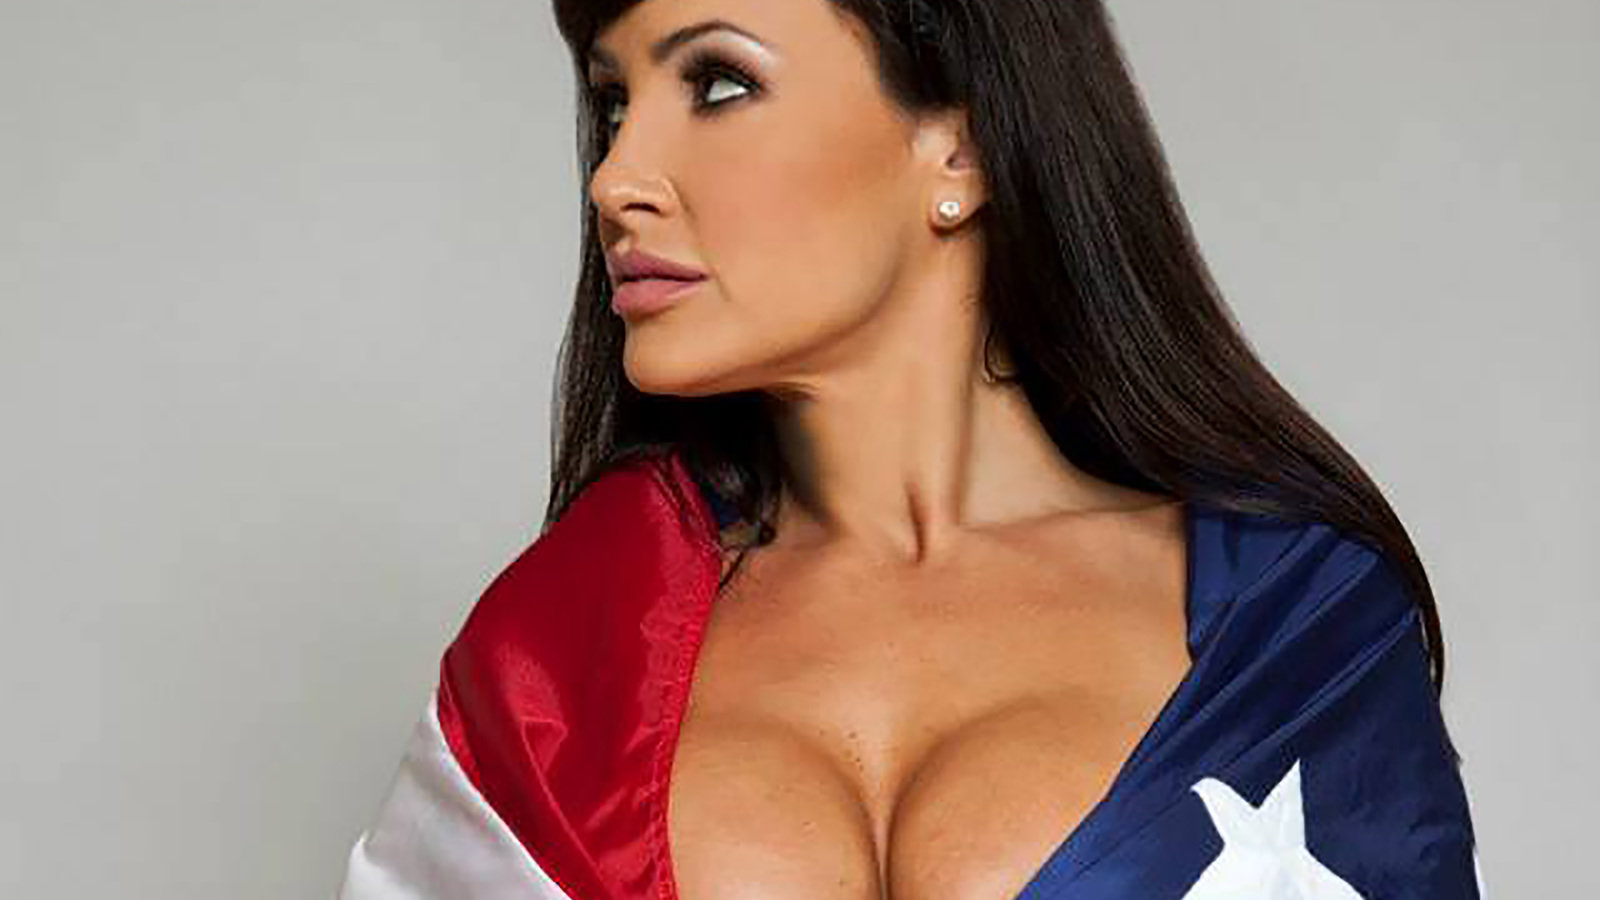 Petition 183 Vote For Lisa Ann For President Of The United